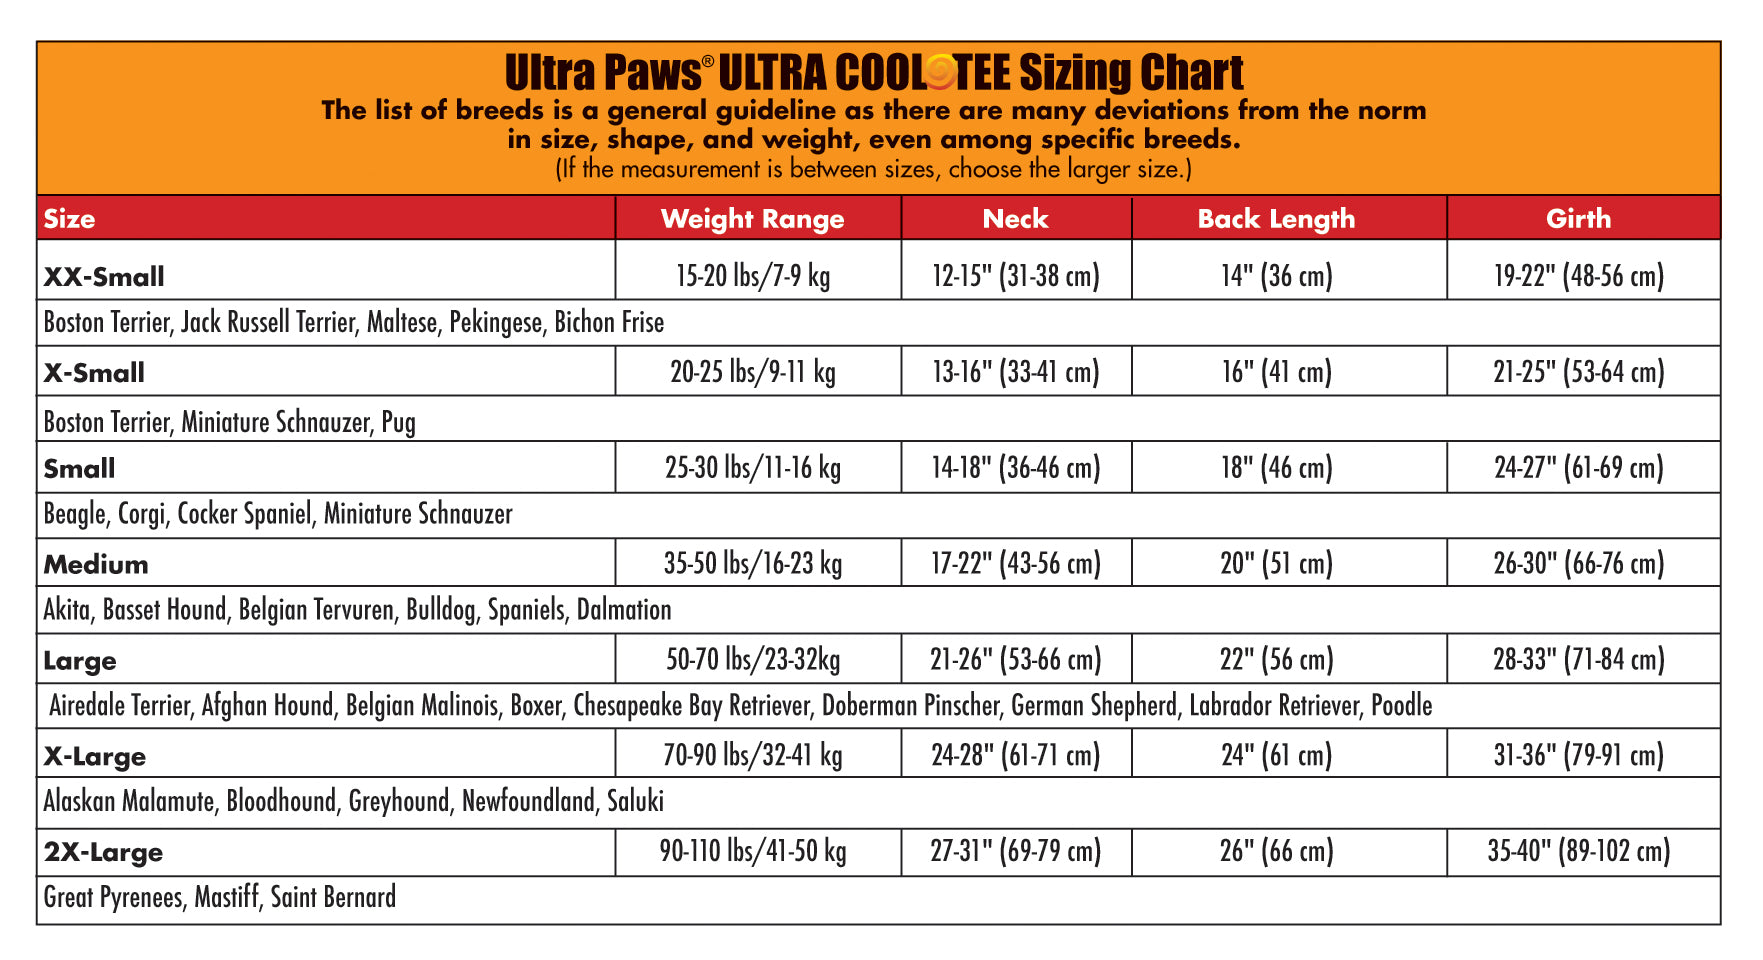 Ultra Paws Ultra Cool Tee Sizing Chart